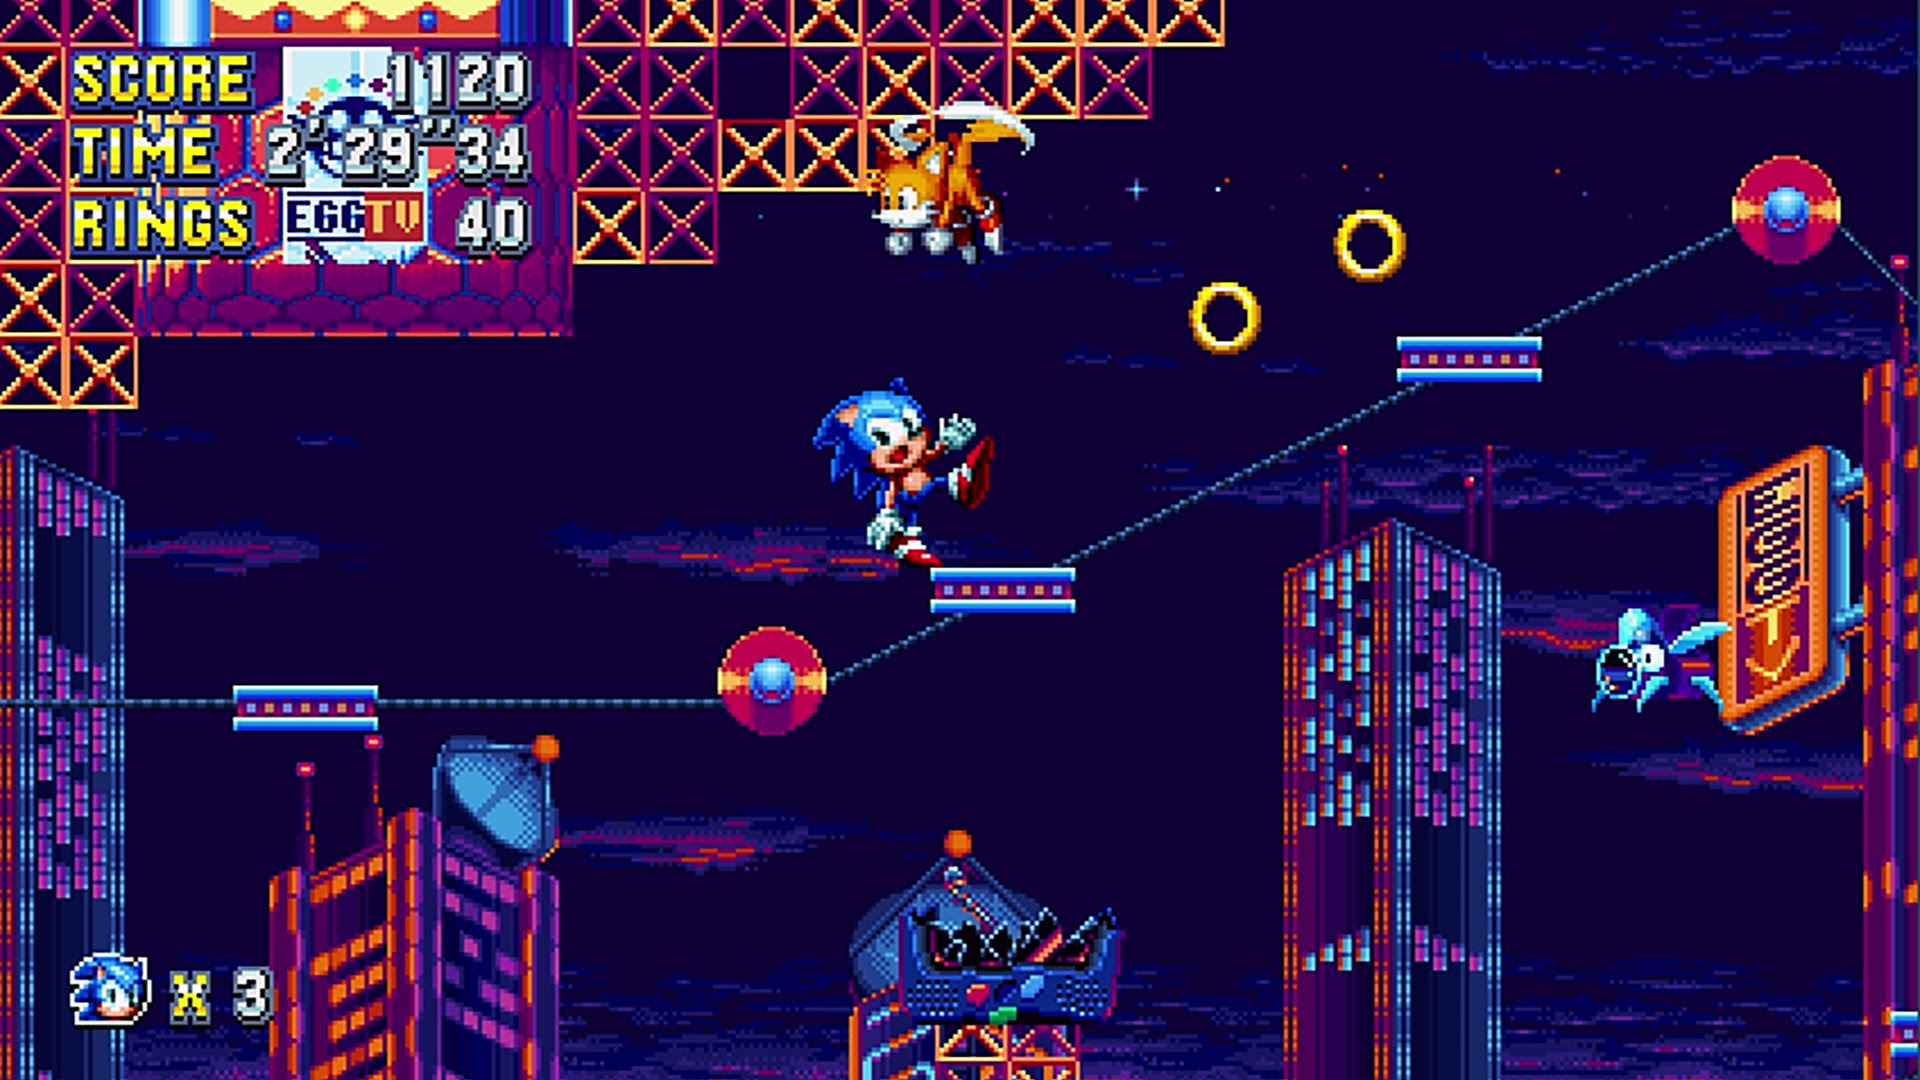 Sonic Mania was just hit with a two-week delay on PC screenshot